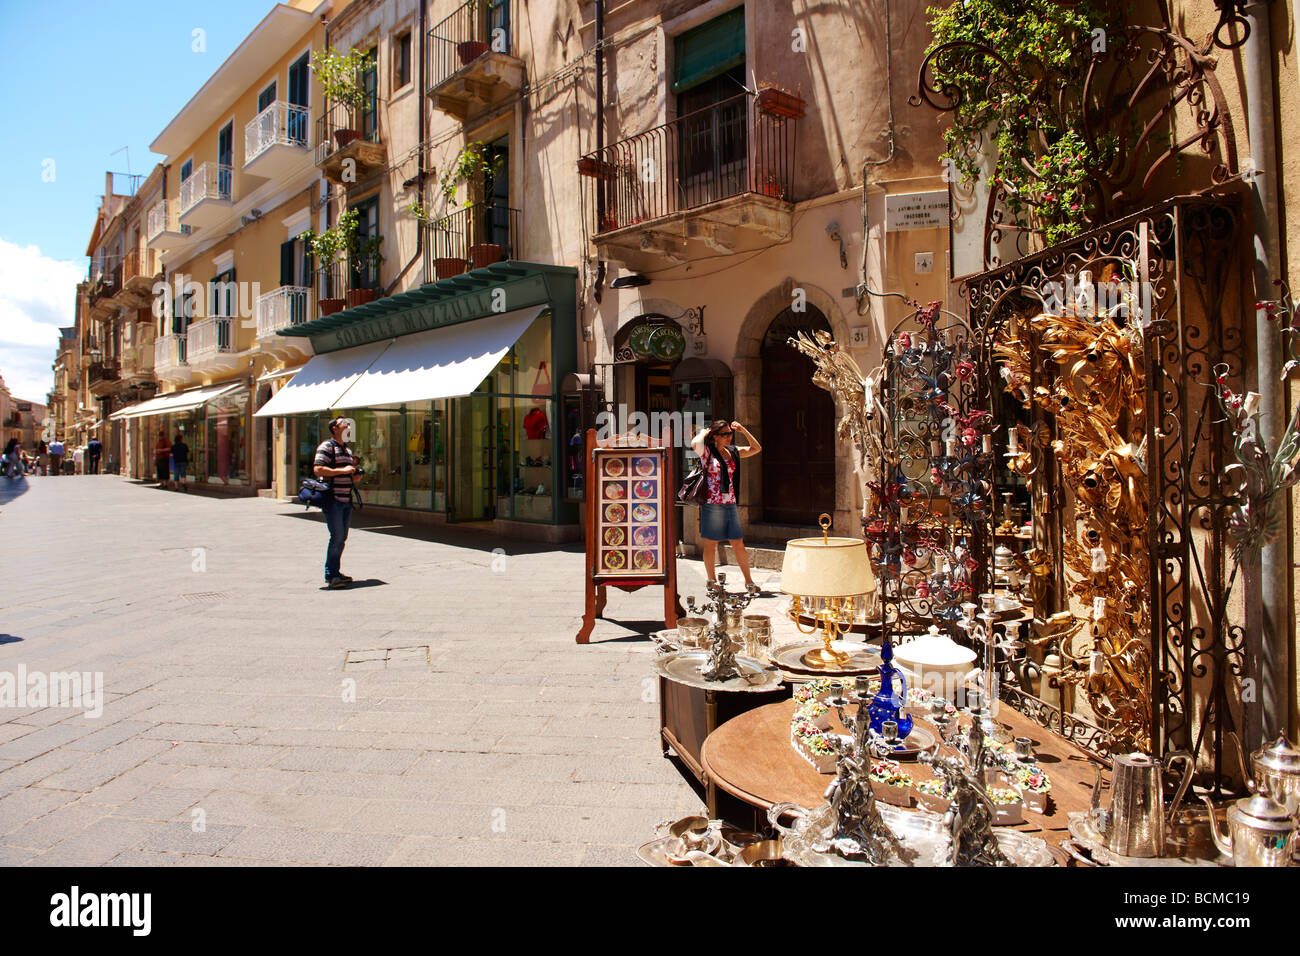 Antique shops in the main street Taormina, Sicily - Stock Image